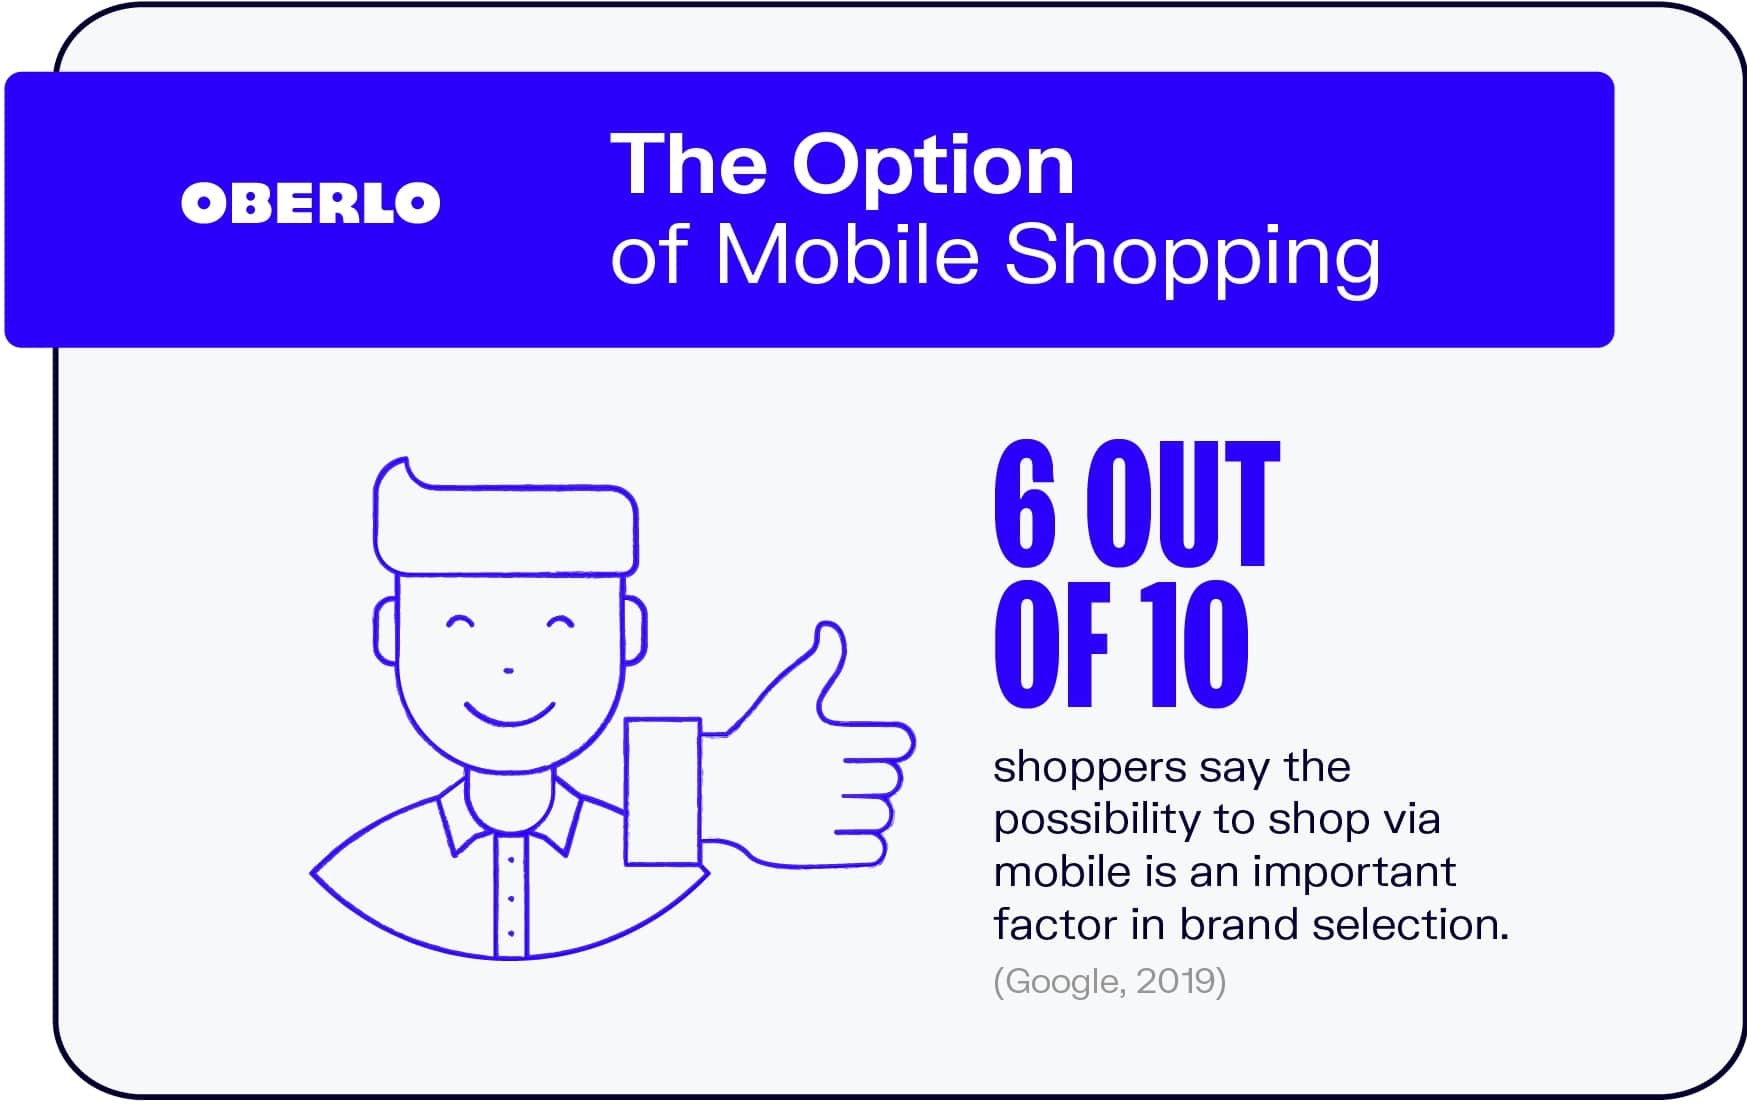 The Option of Mobile Shopping